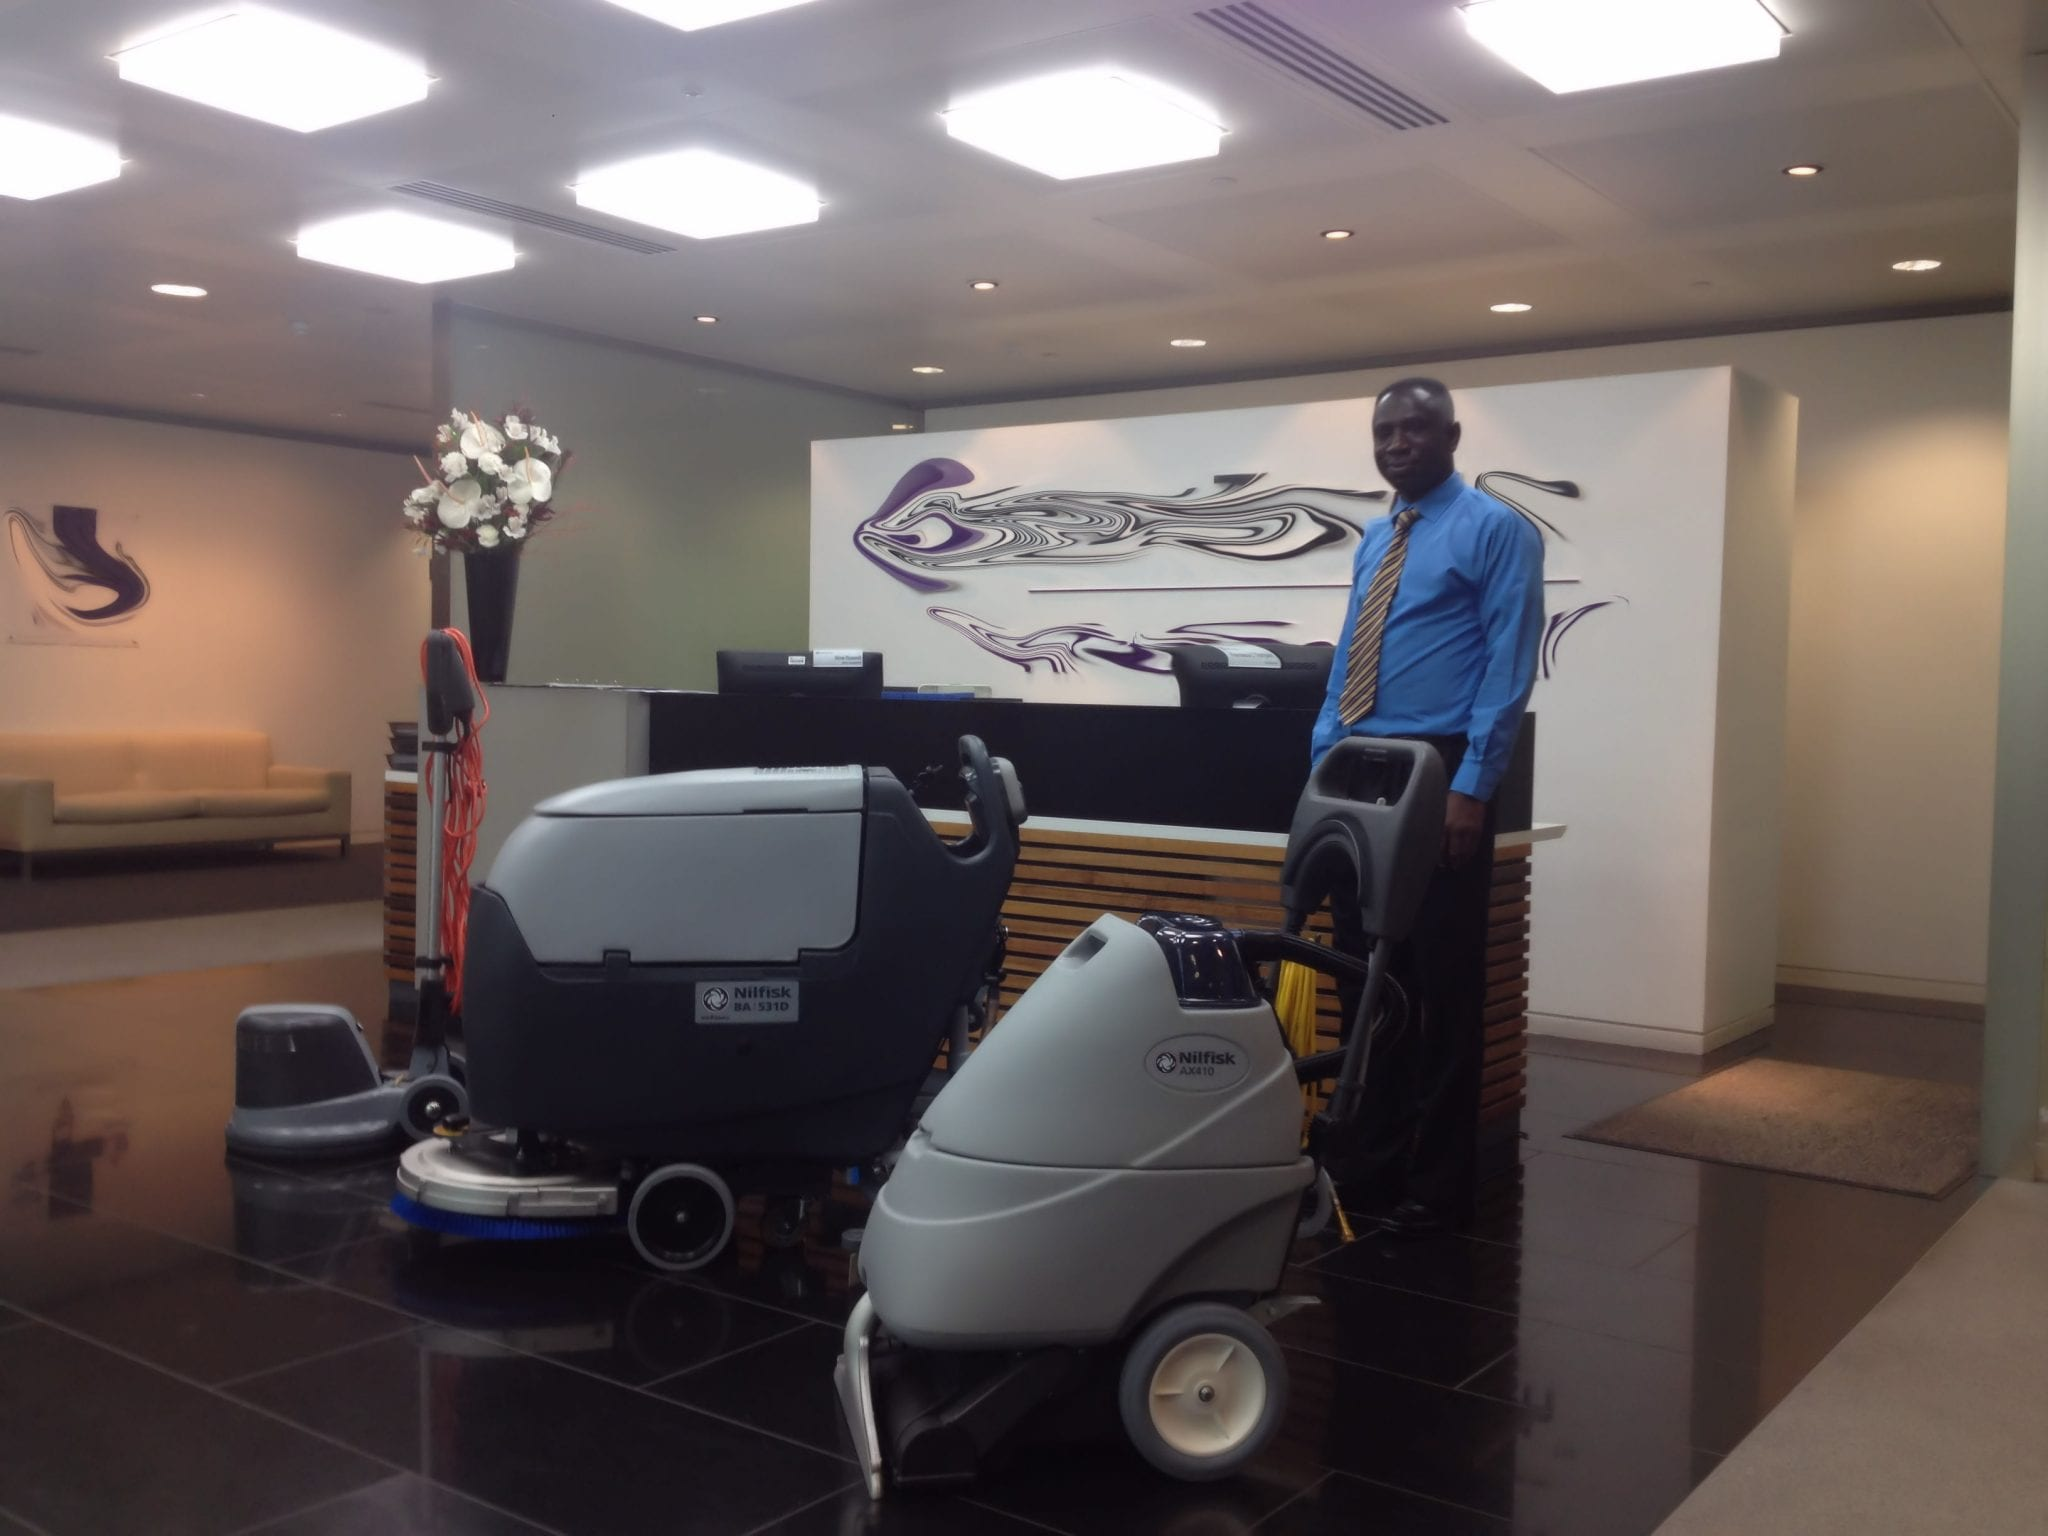 Nilfisk floor cleaning machines for sale